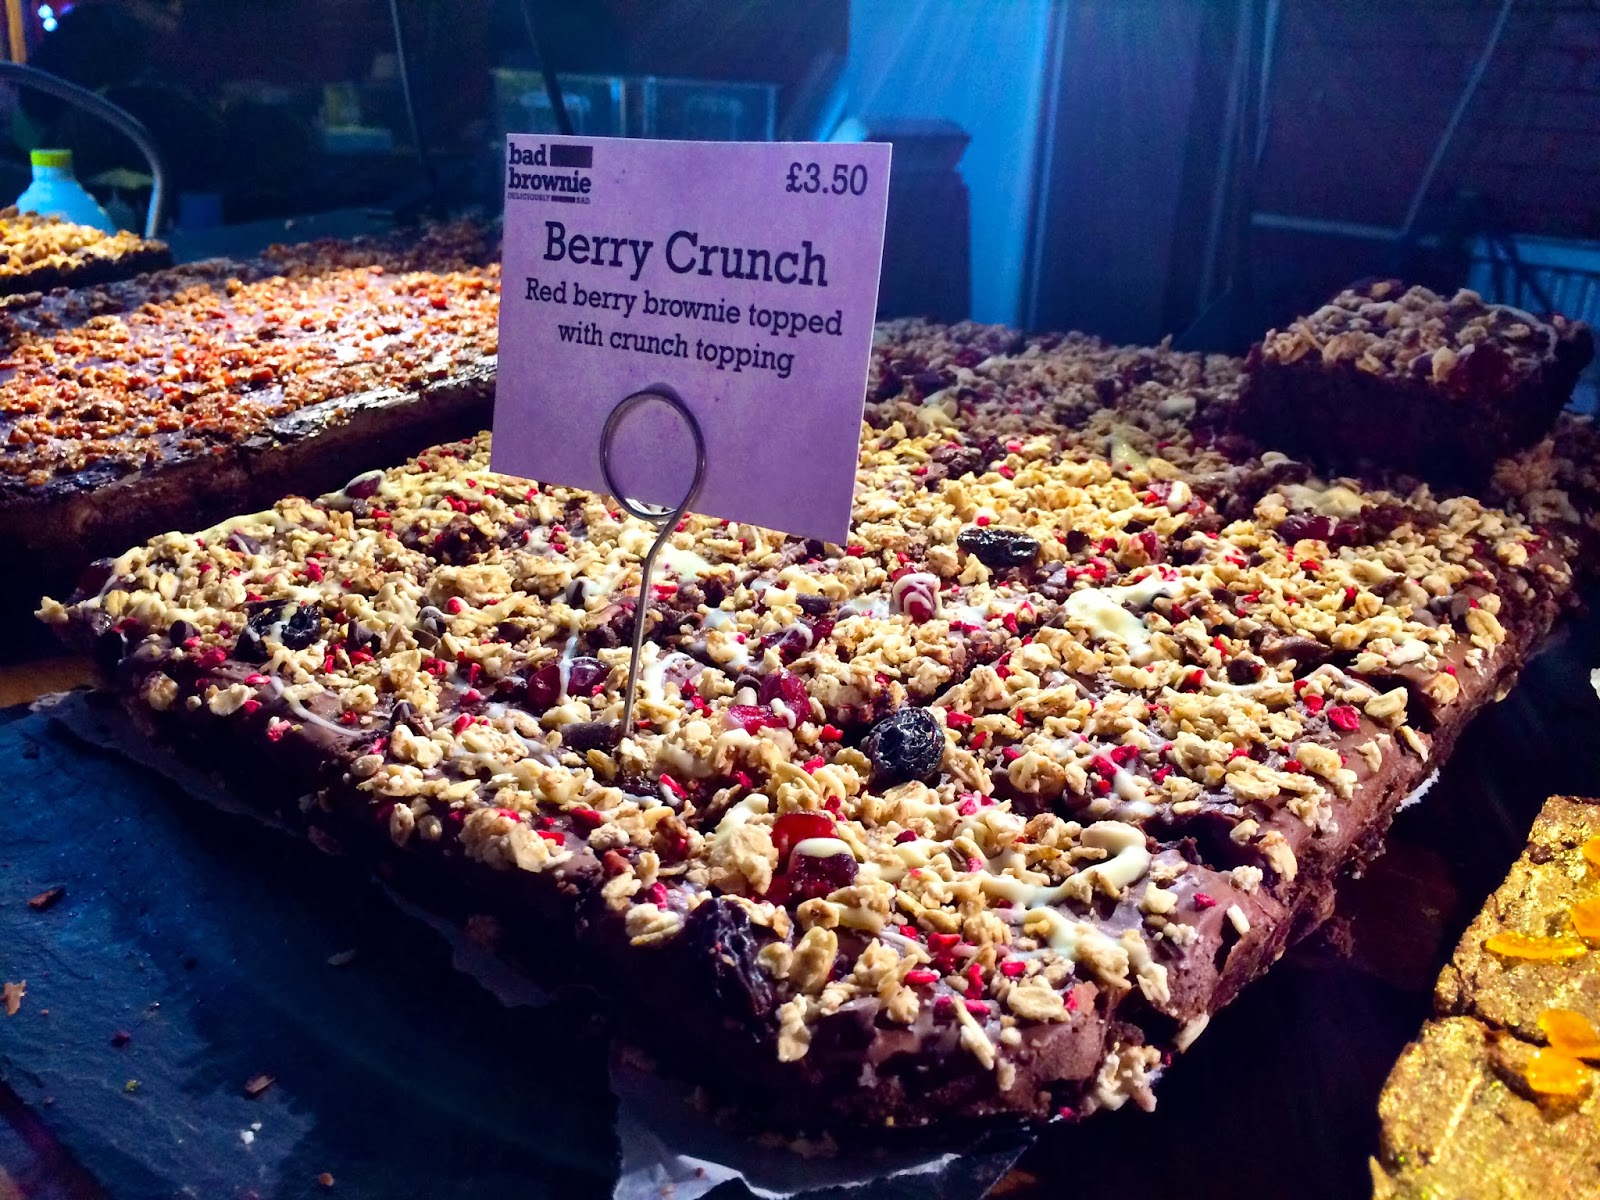 Berry Crunch - Bad Brownie - Hawker House